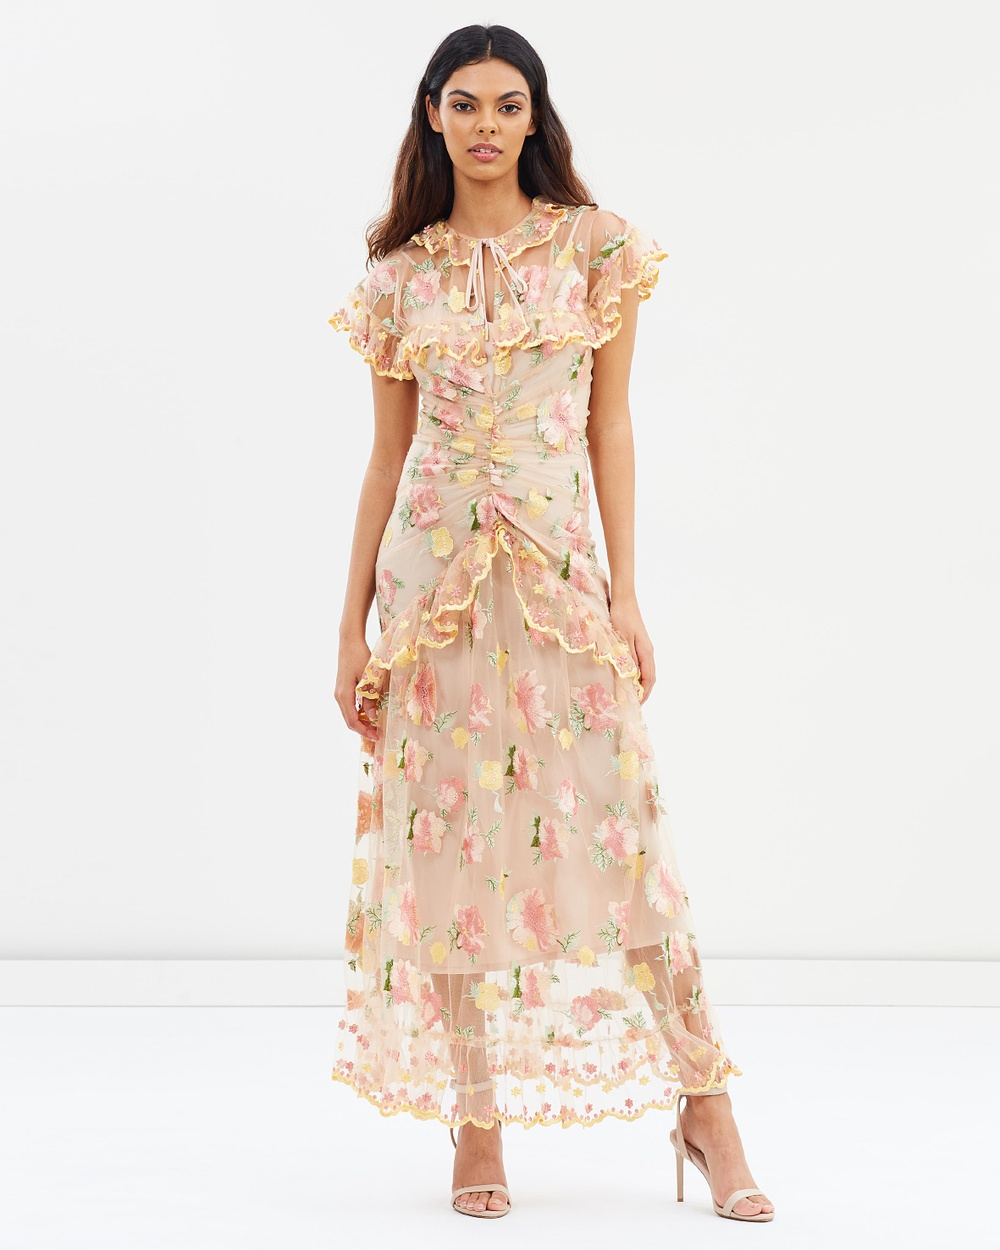 Photo of alice McCALL alice McCALL Floating Delicately Dress Dresses Nude Floating Delicately Dress - A diaphanous dream, the Floating Delicately Dress by Australian designer alice McCALL references a bucolic prairie-via-the-Victorian era mood with its high collared neckline and sheer frilled yoke. We adore the meandering floral embroidery and stunning attention to detail with the gold-toned metallic aglets to the charming neck-ties. Our model is wearing a size AU 8 dress. S